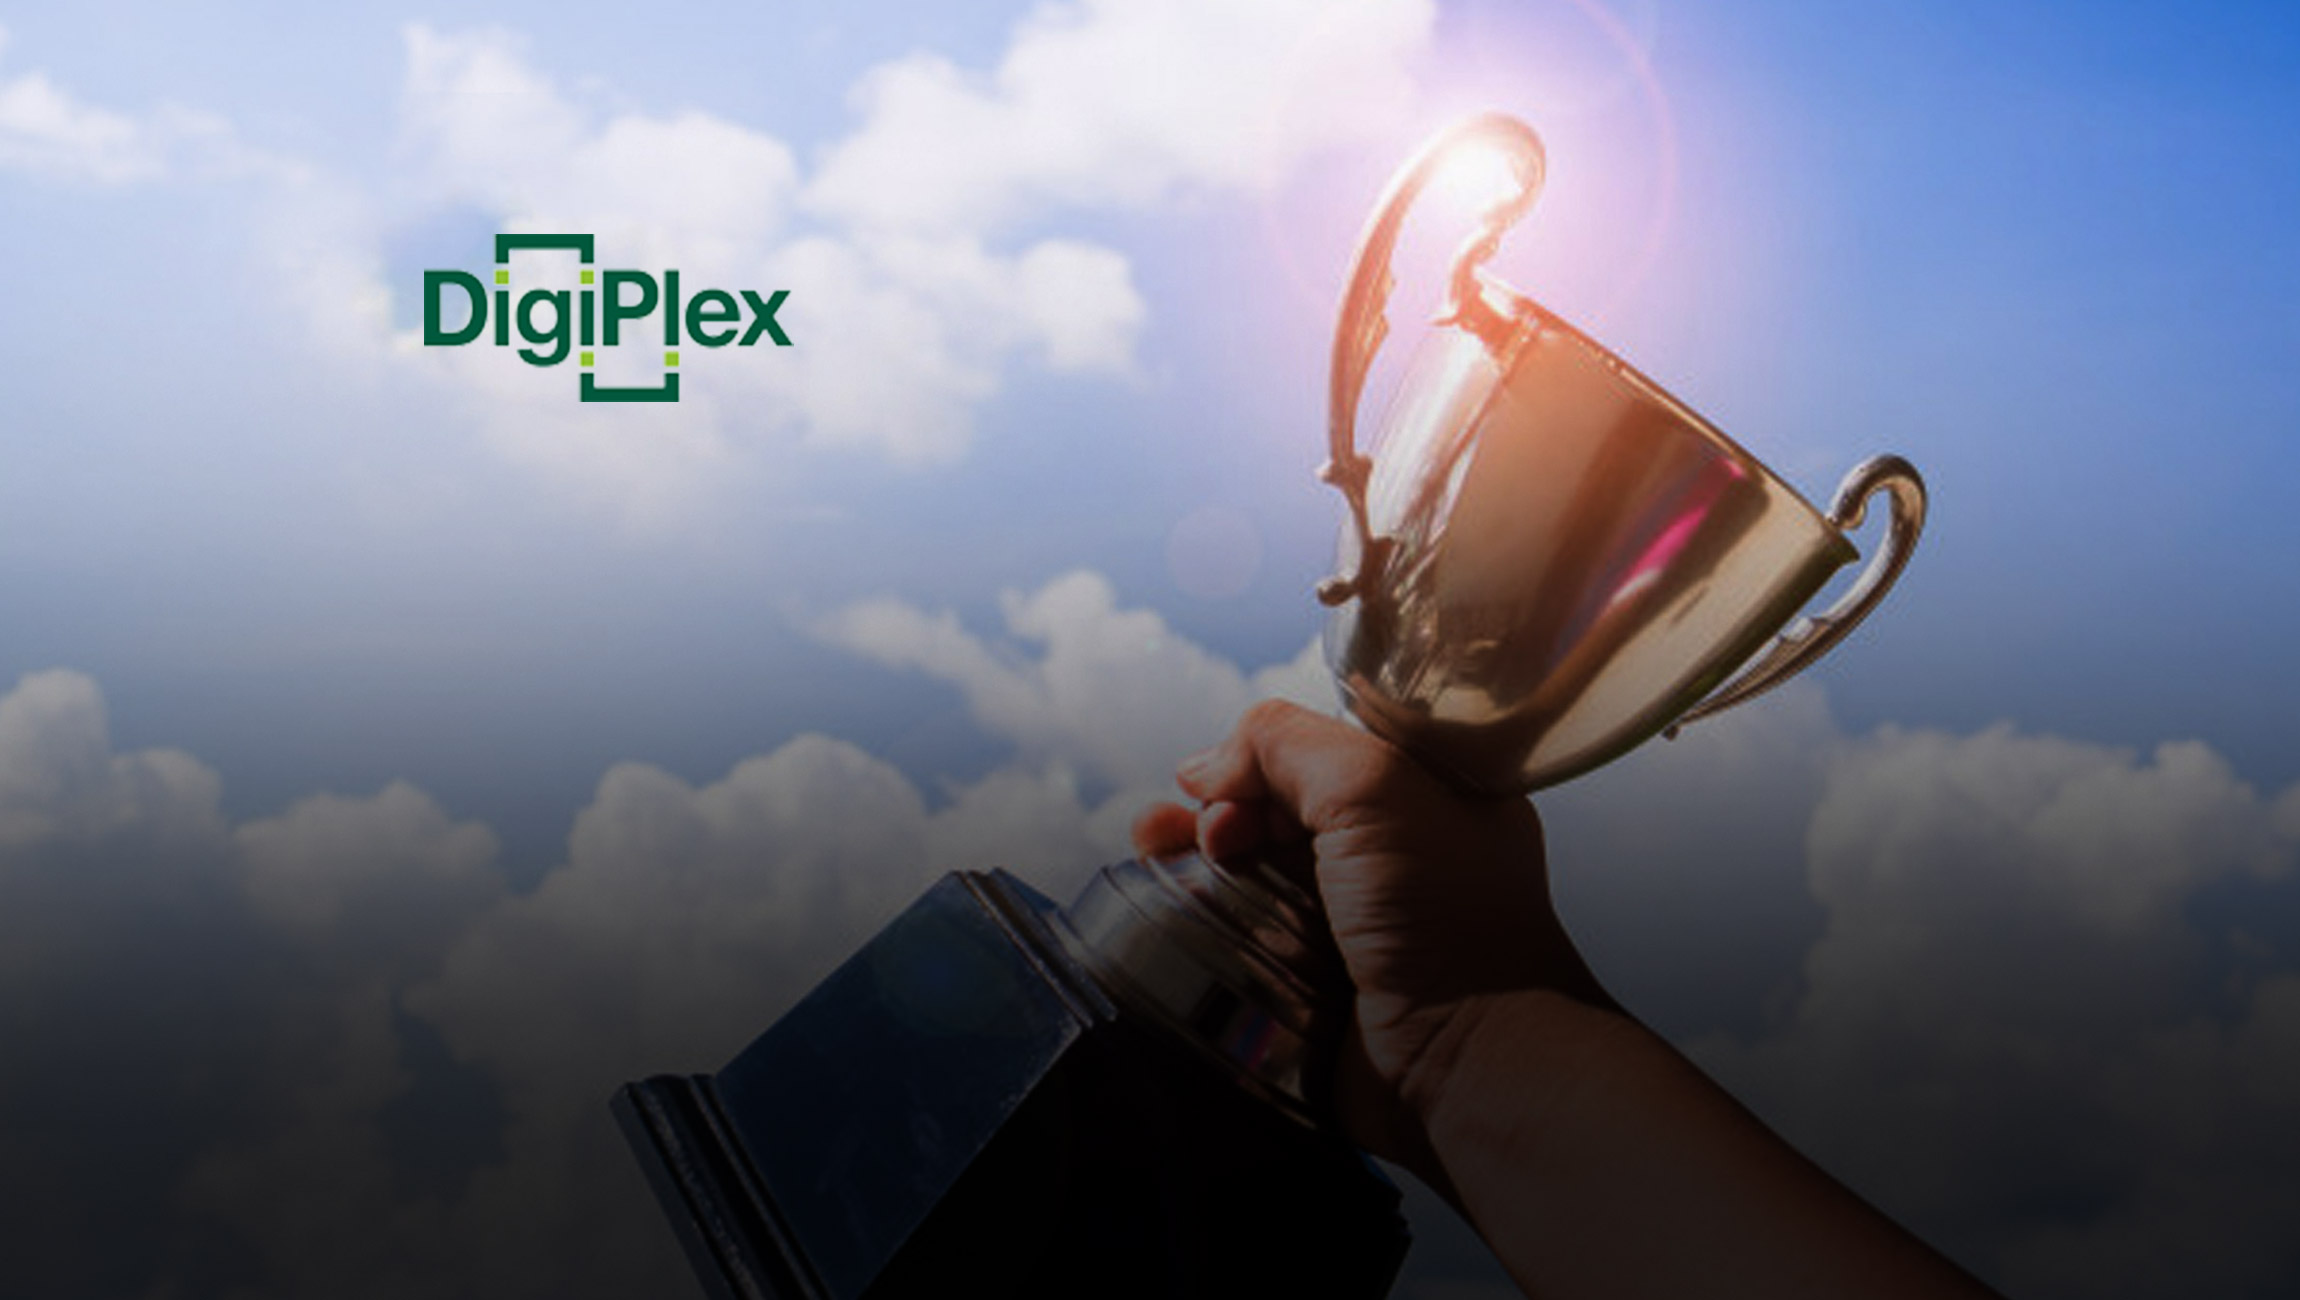 DigiPlex Brings Home Gold and Silver from Corporate Content Awards